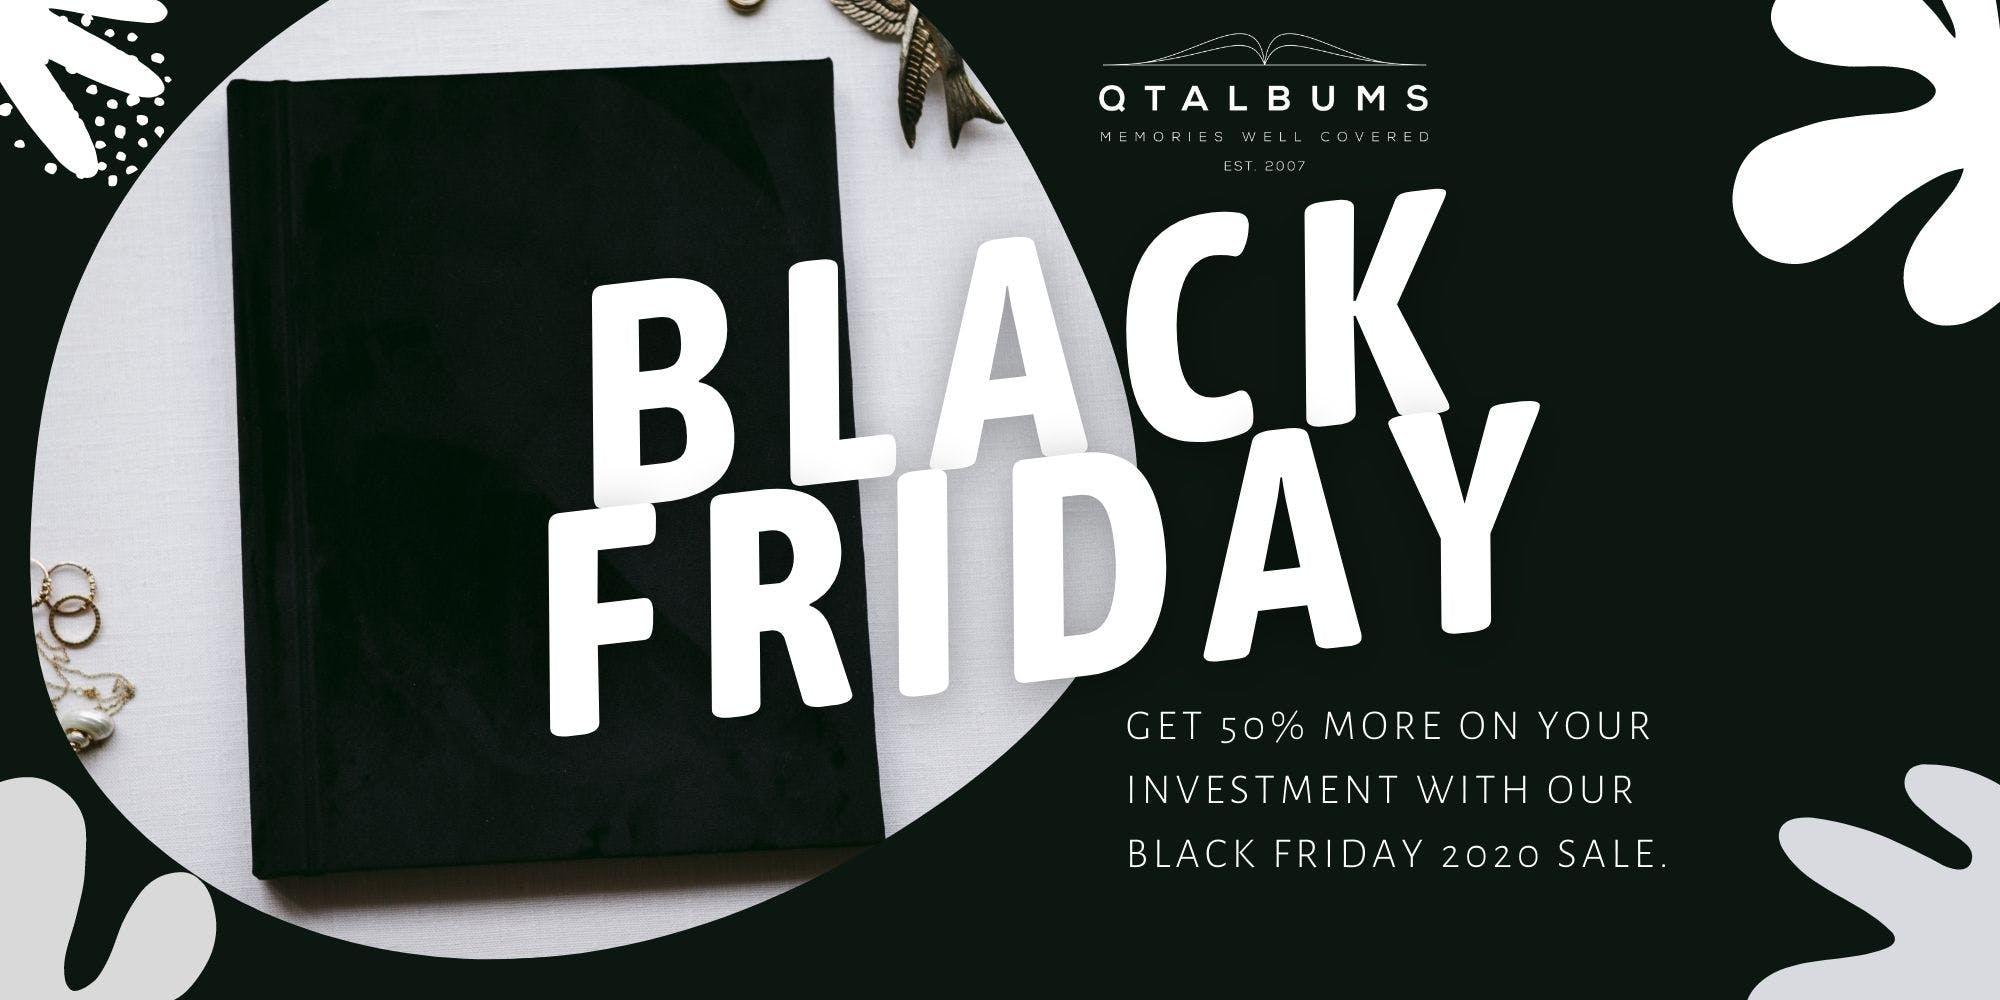 Black Friday deals for photographers photo album discount code